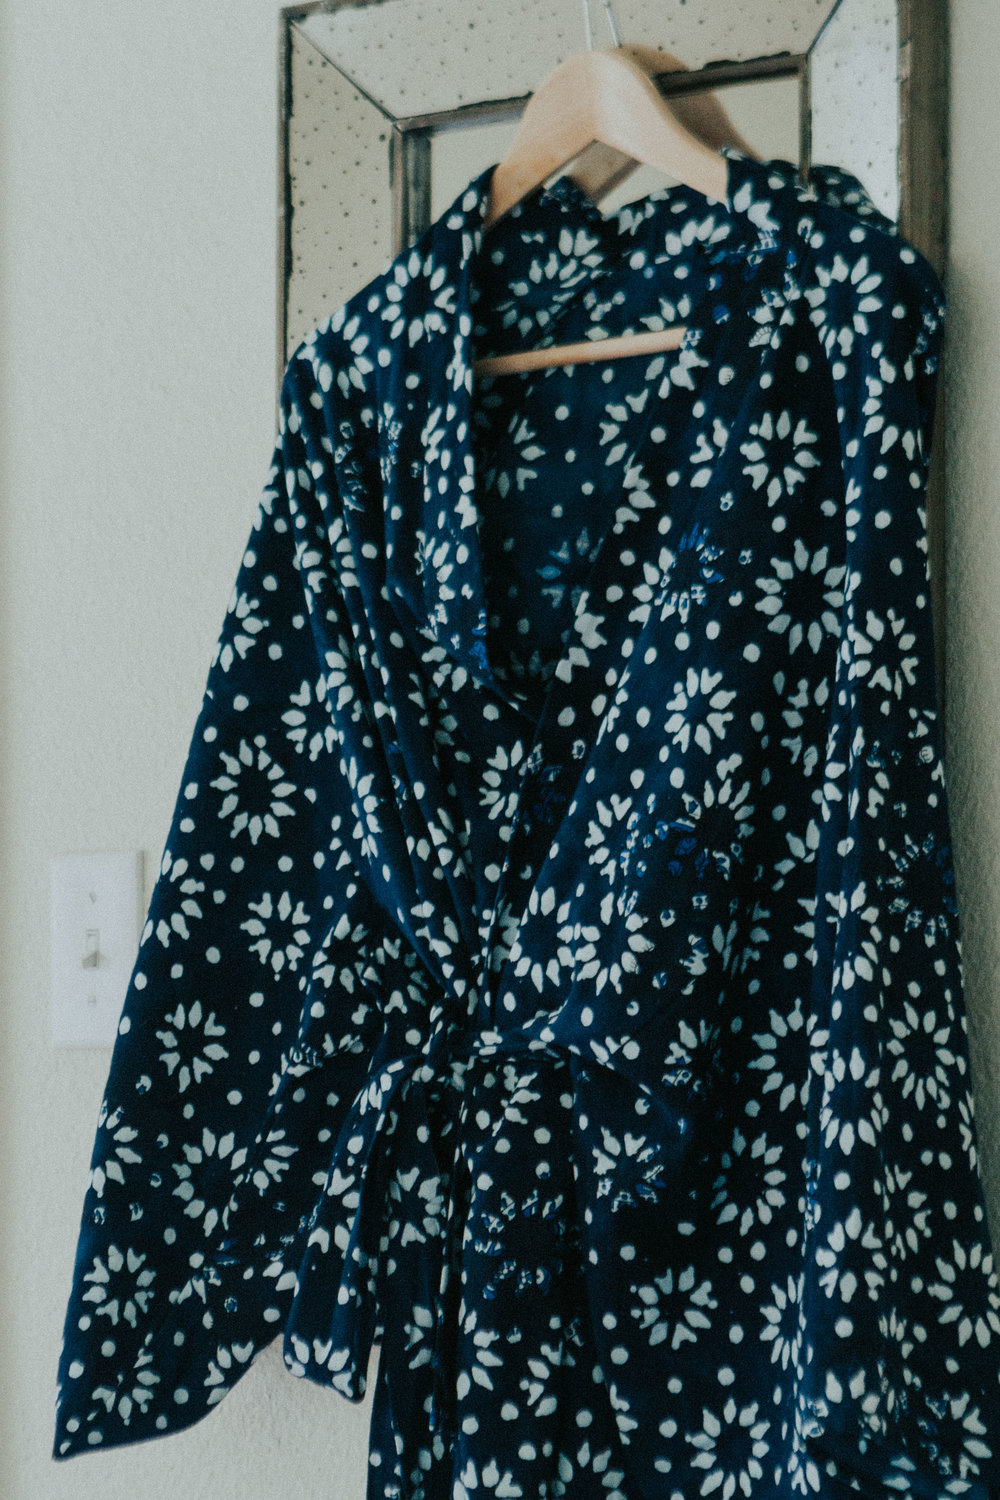 We recently took a trip to Austin and stayed at Hotel Saint Cecilia. I fell in love with their robes. Nicholas surprised me with one as my push gift a few weeks ago. It's a sweet little reminder from our trip.